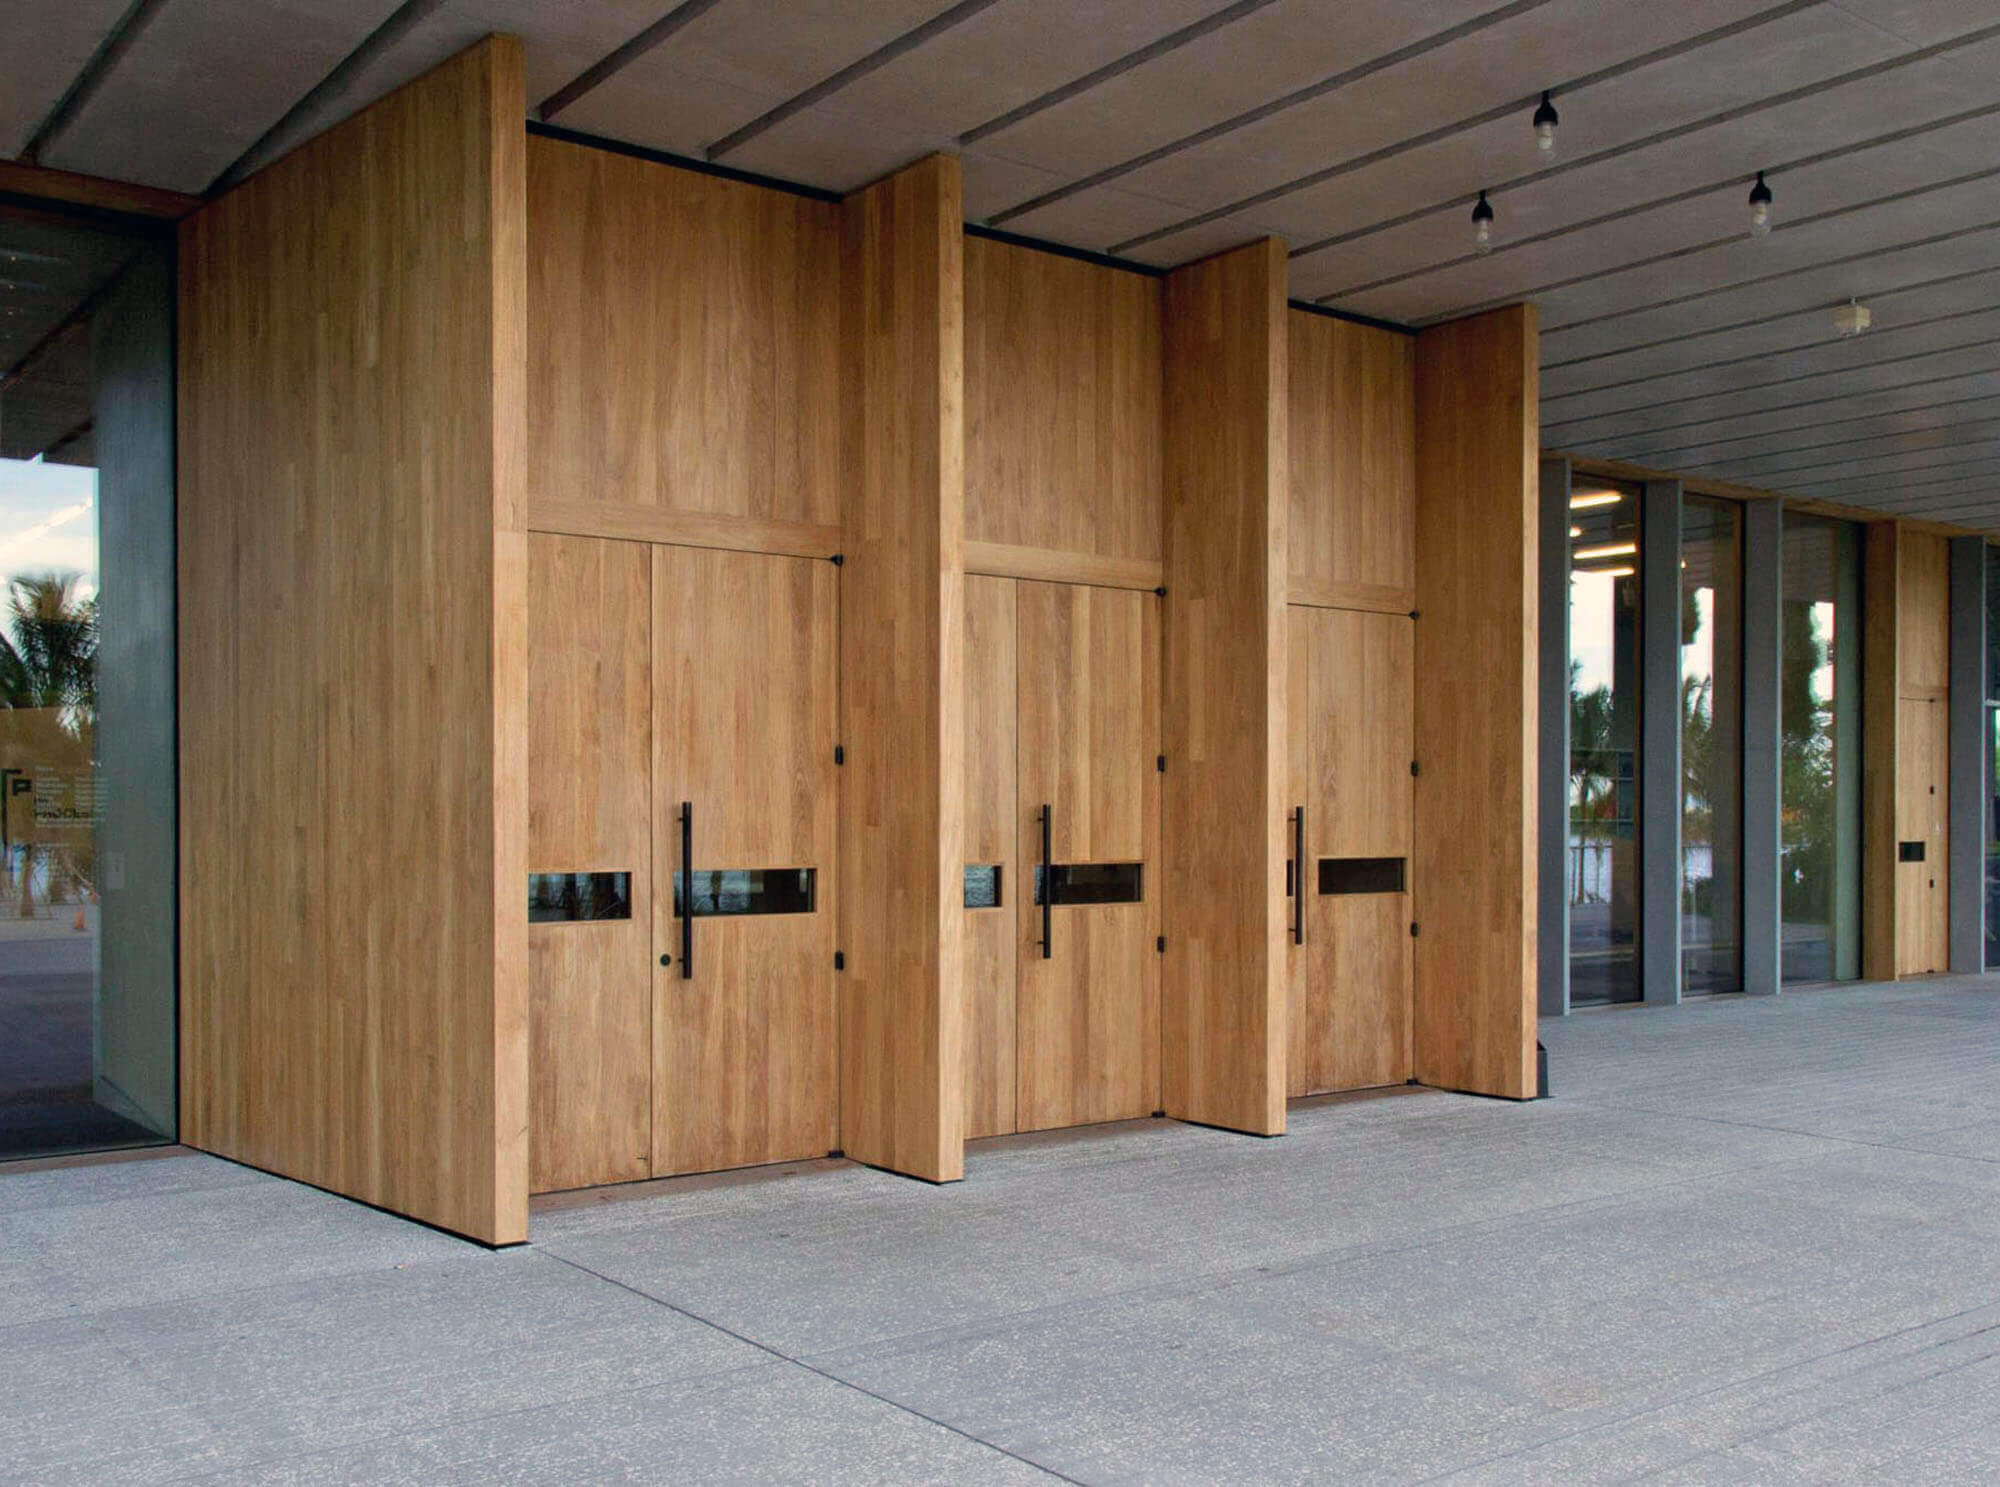 TEAK ENTRY DOORS FRONT ENTRANCE OF THE MIAMI PEREZ ART MUSEUM.